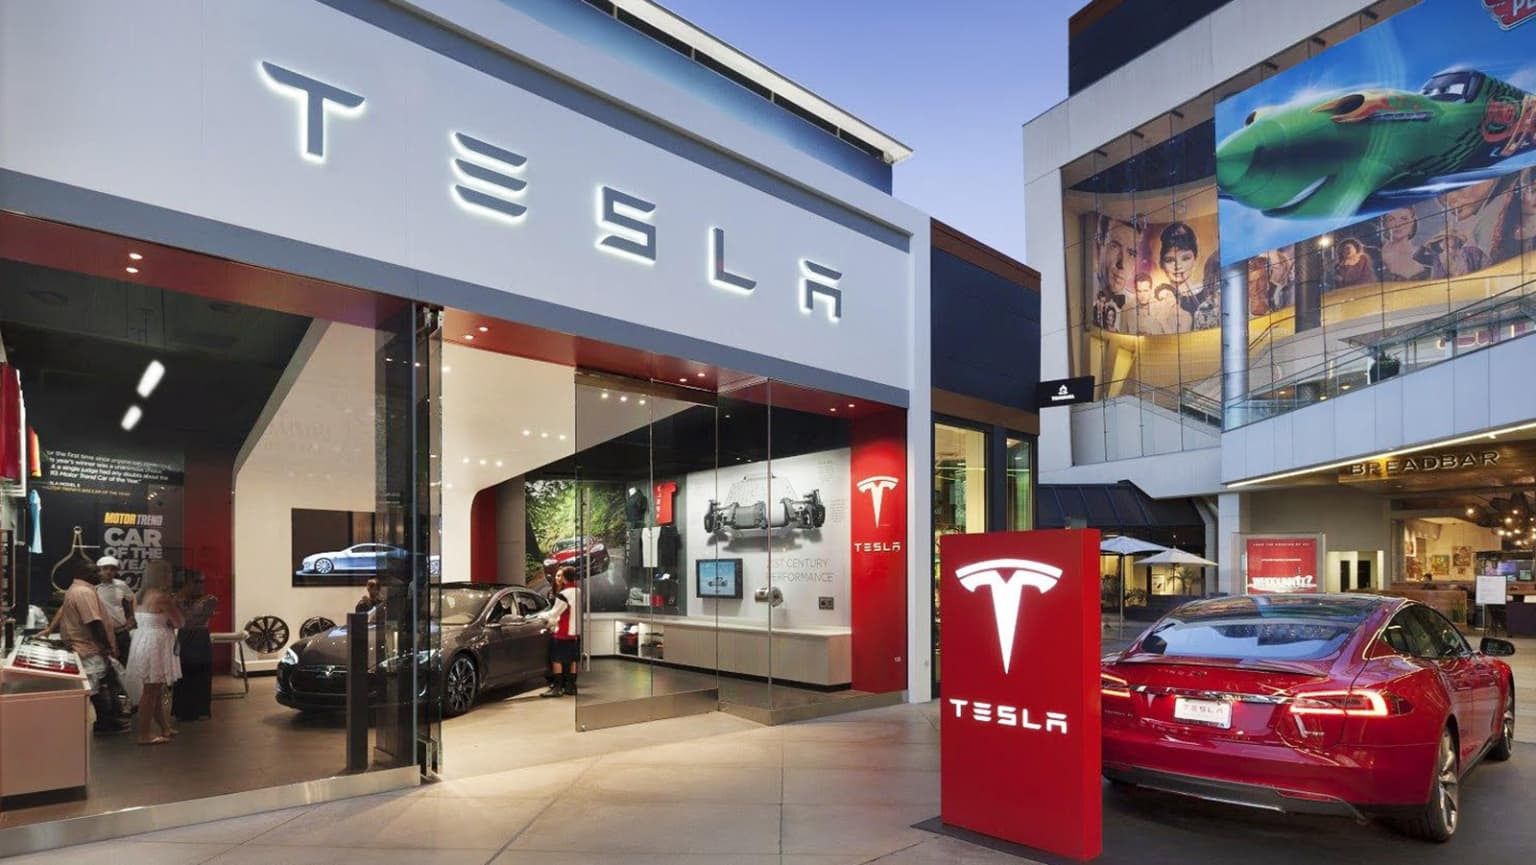 Tesla - Repairs, Maintenance, and In-Store Installation